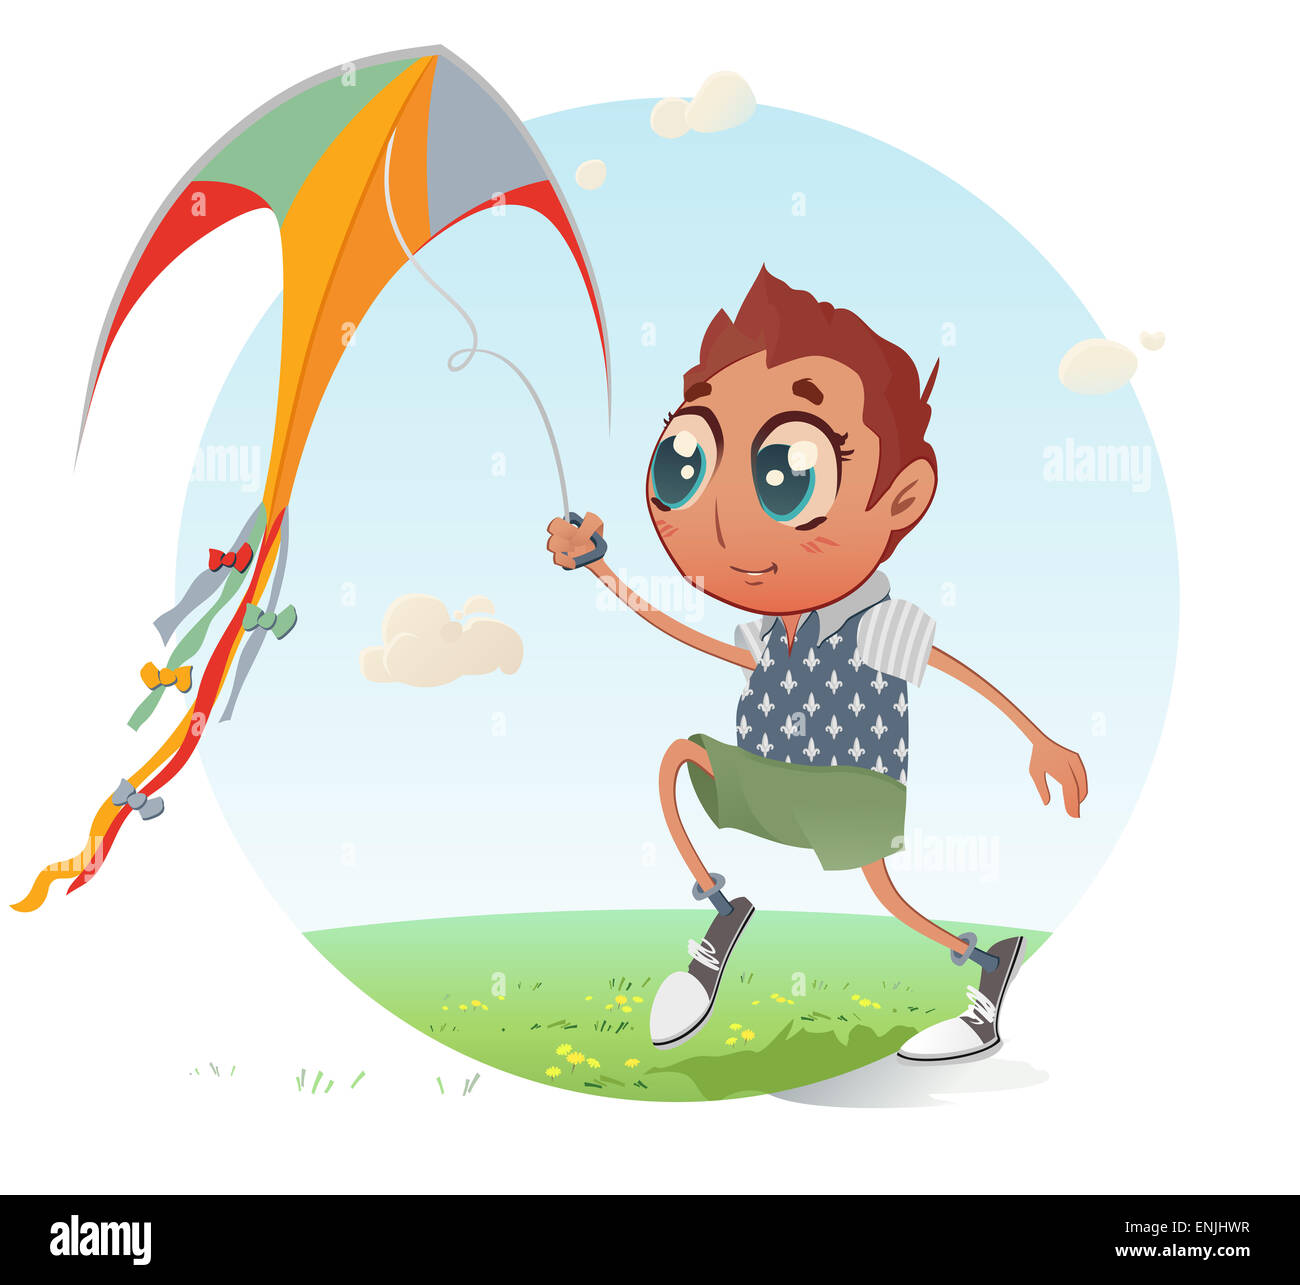 The vector illustration of the Little Boy flying a Kite into the Blue Sky. Childhood concept - Stock Image